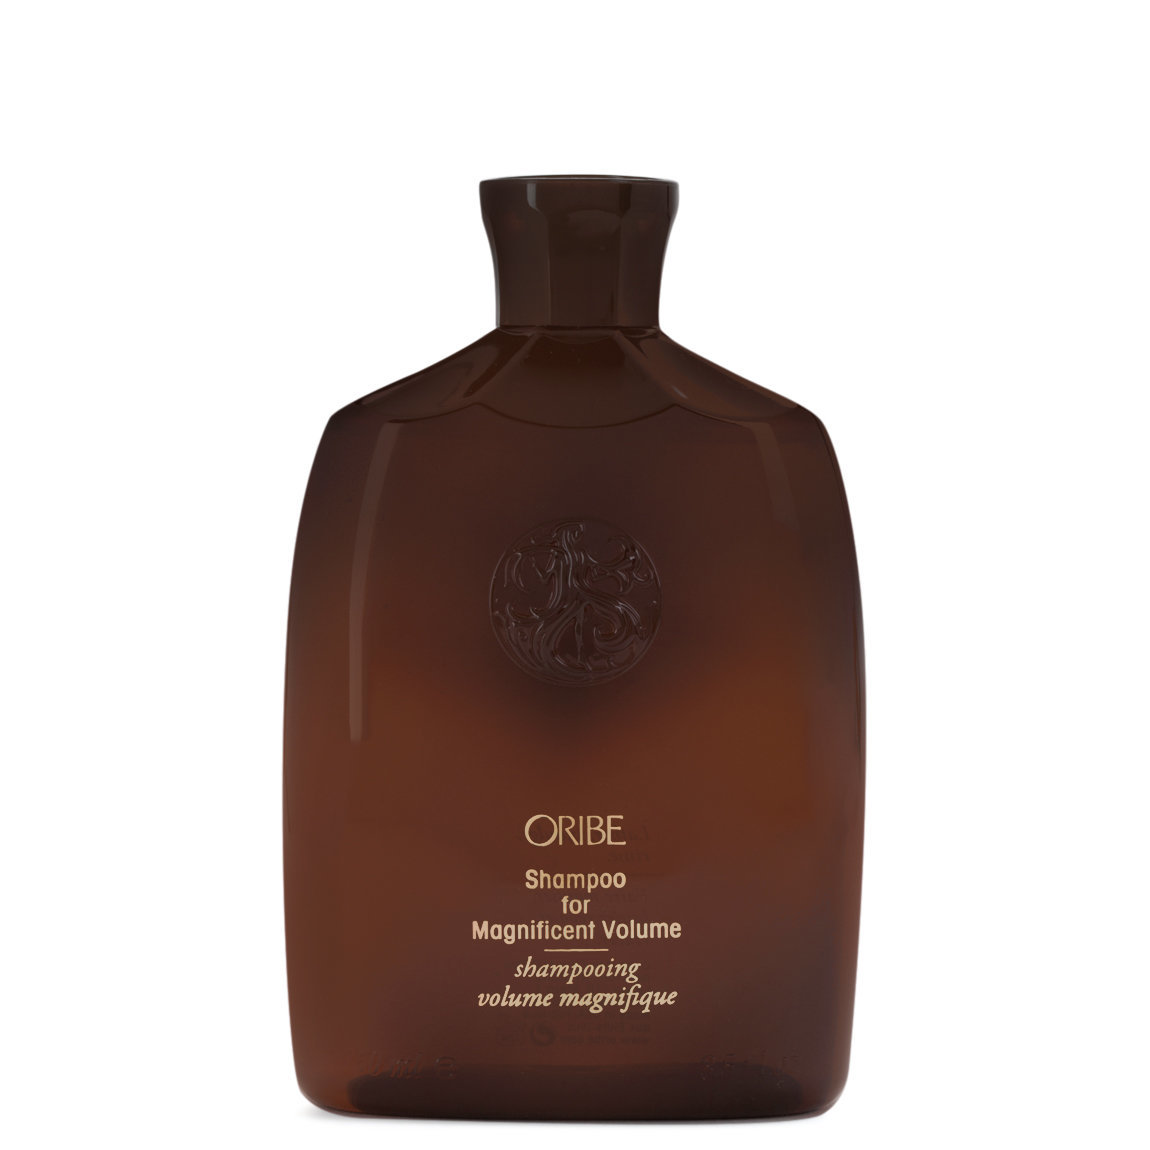 Oribe Shampoo for Magnificent Volume product smear.